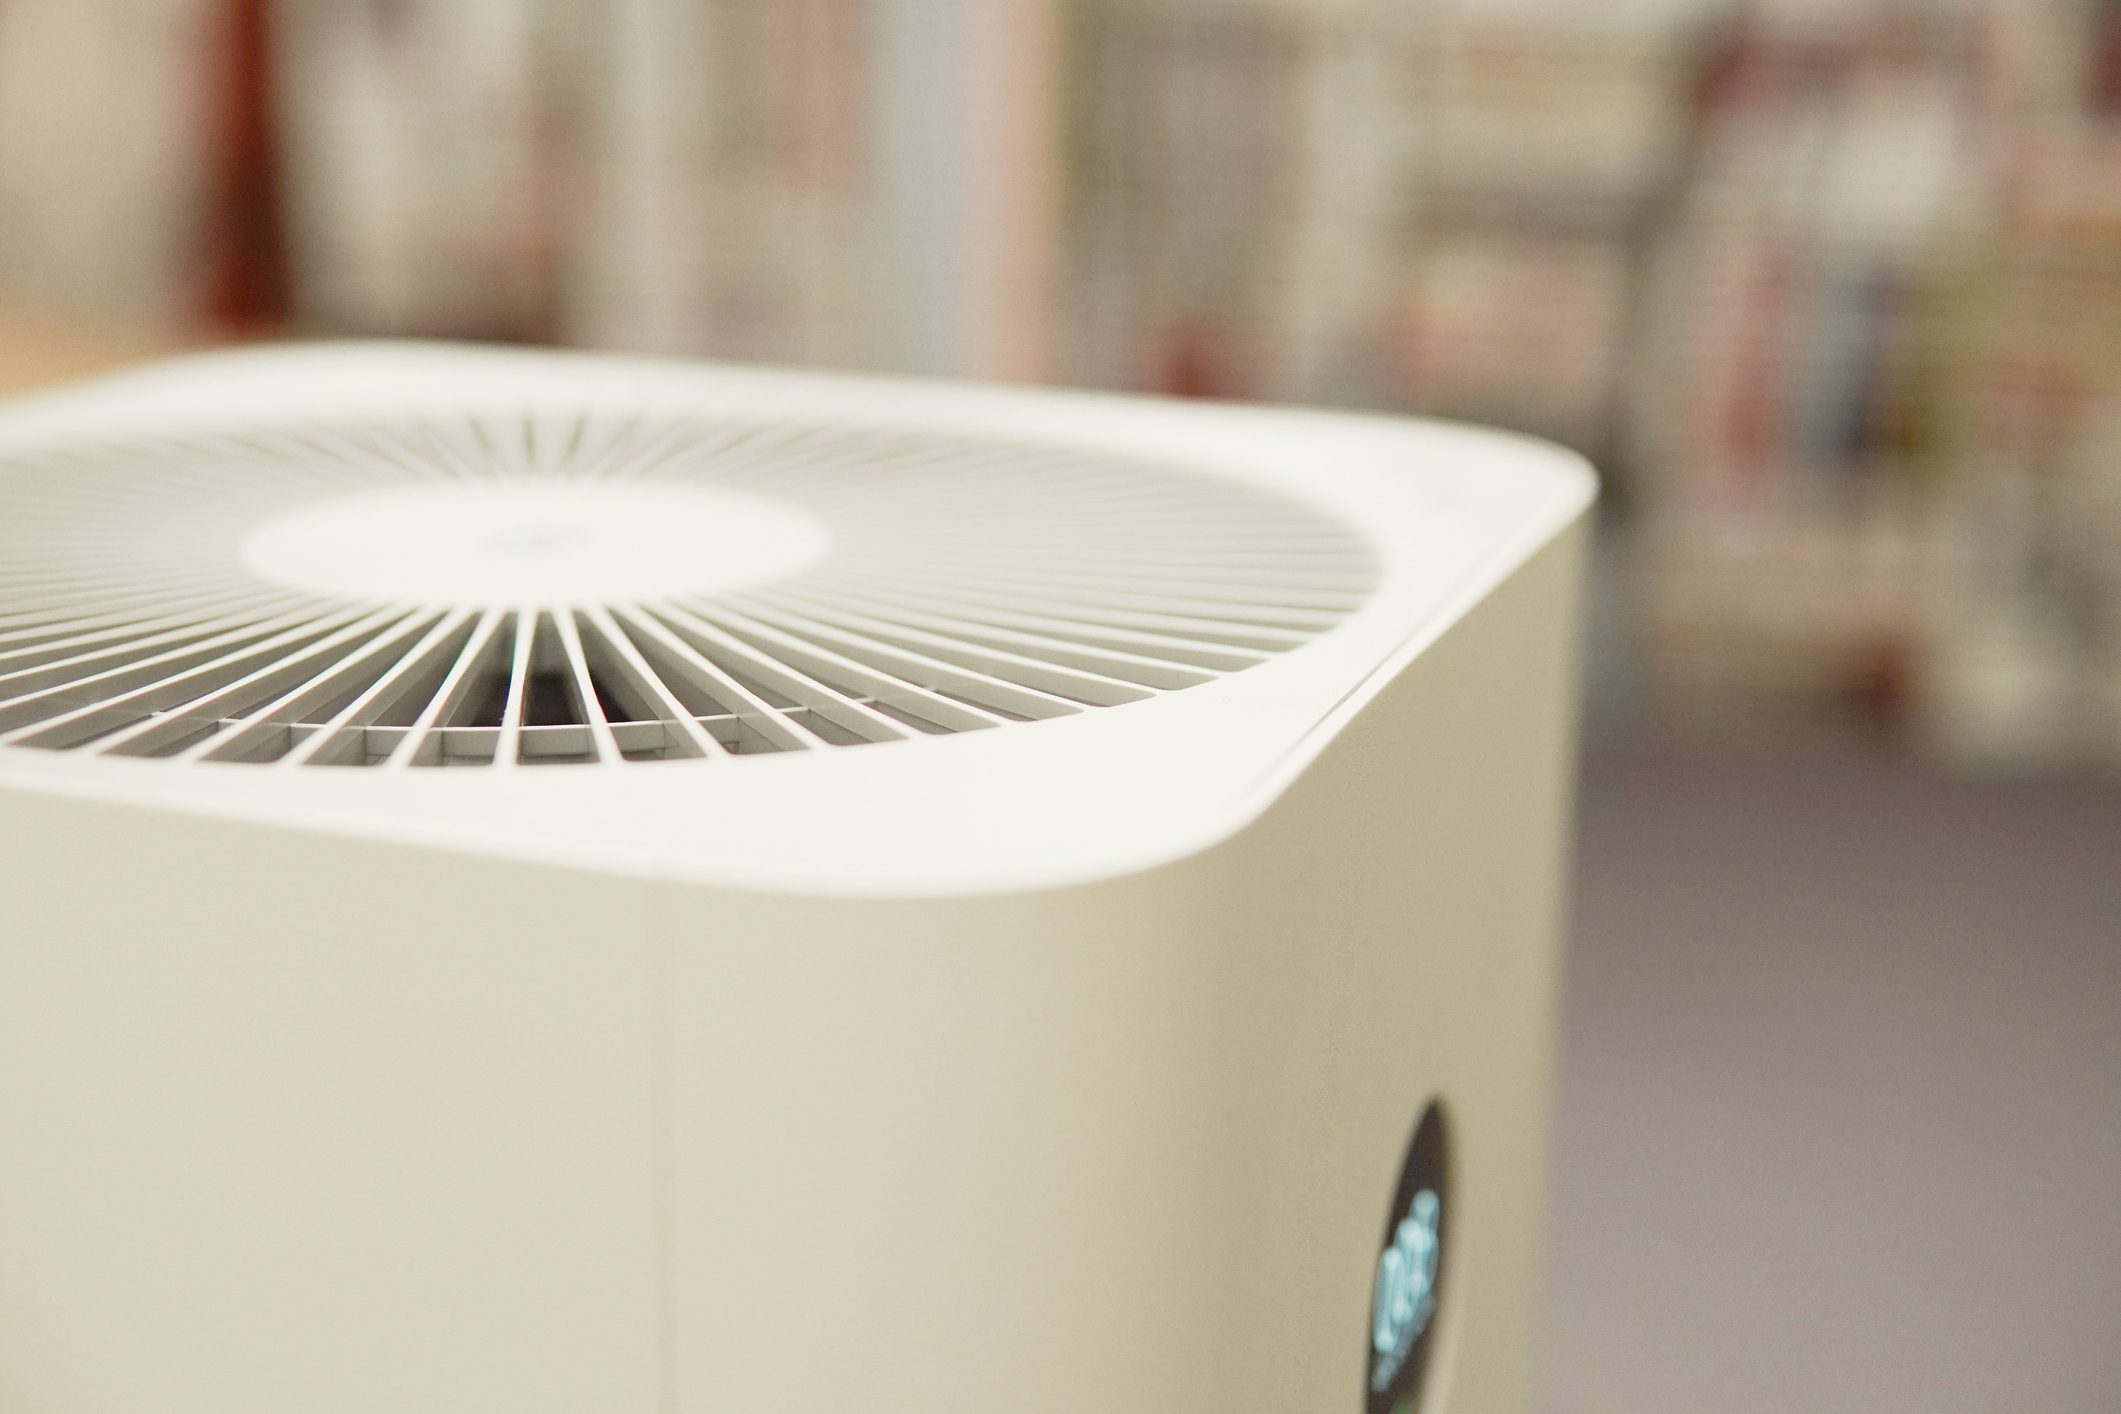 Closeup DOF of indoor air purifier in bedroom, air pollution PM 2.5, air quality, respiratory health concept